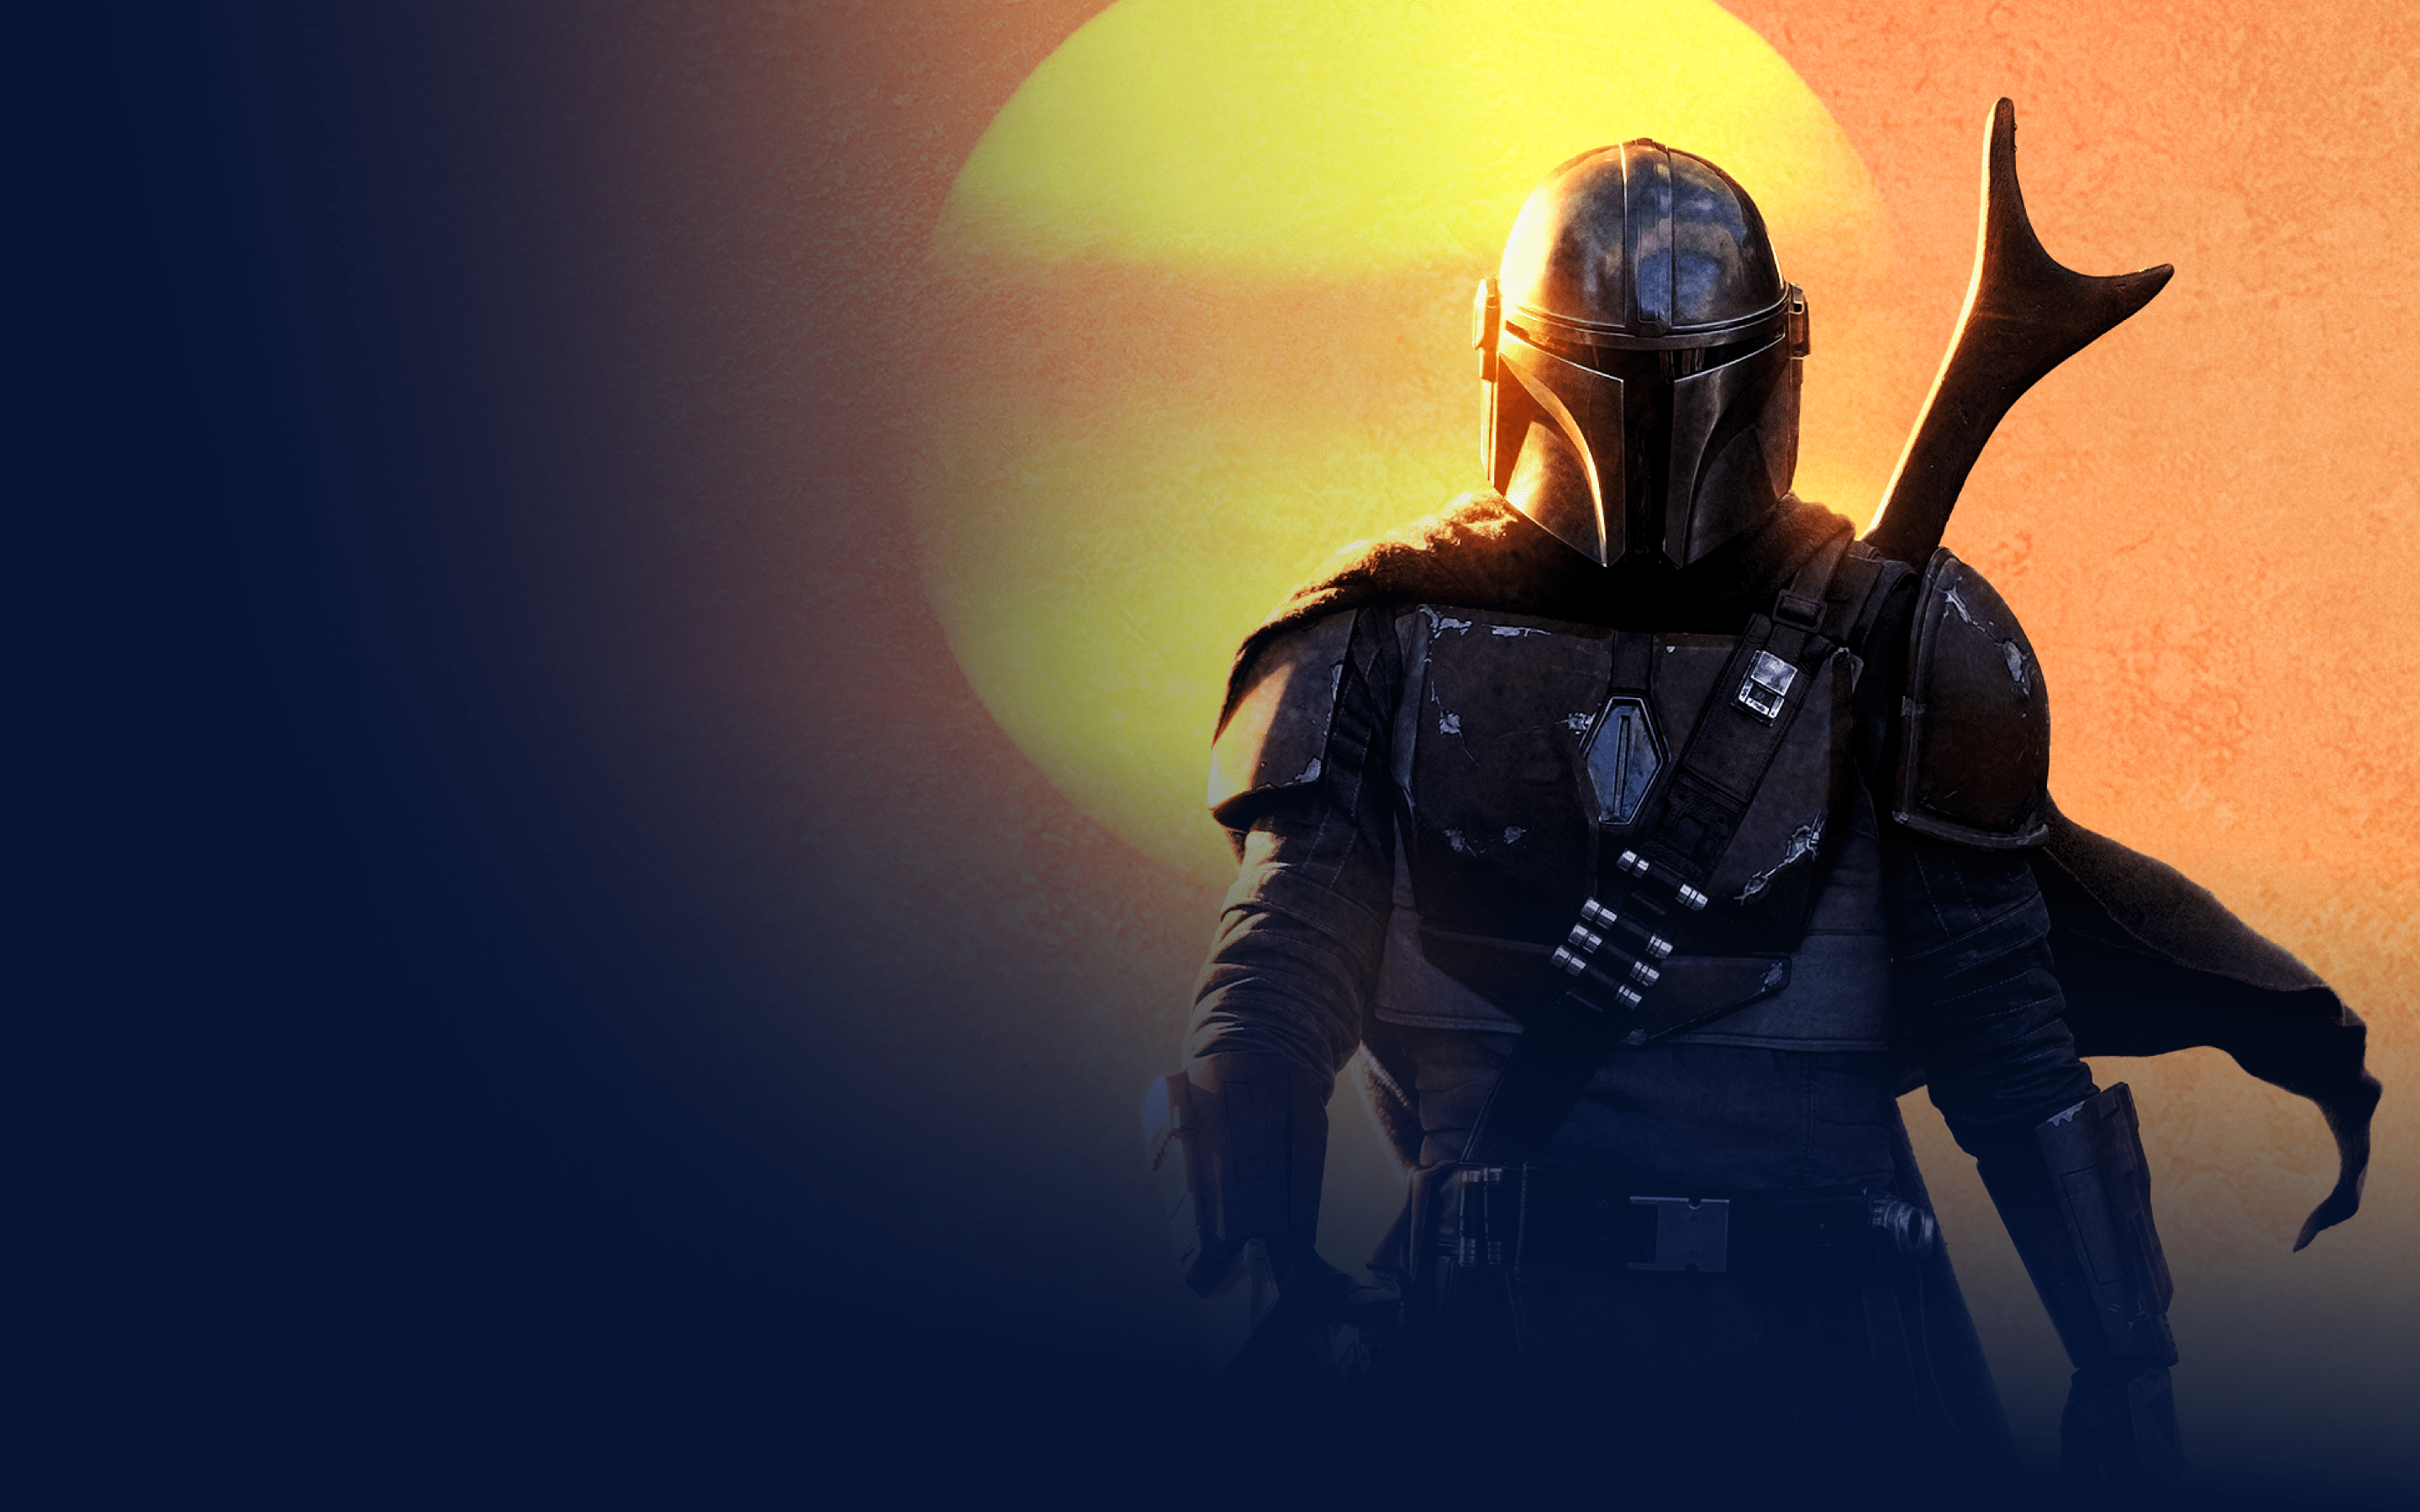 The Mandalorian, a lone gunfighter and bounty hunter, walking in front of a setting sun that is a fiery yellow and orange